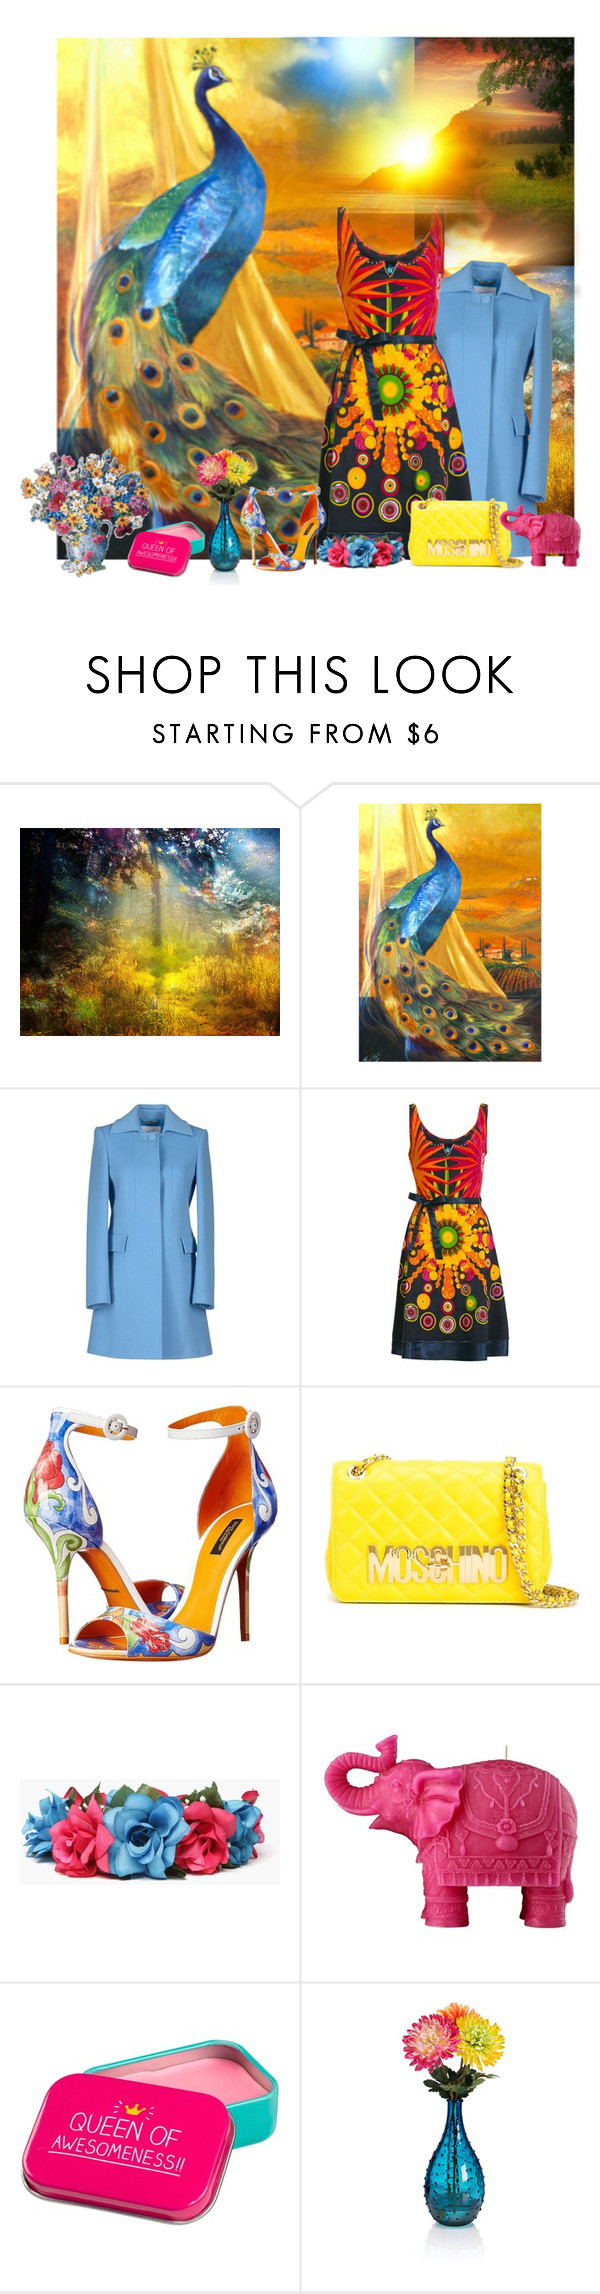 """Untitled #2015"" by tina-teena ❤ liked on Polyvore featuring Blugirl, Desigual, Dolce&Gabbana, Moschino, Mario Luca Giusti and Happy Jackson"